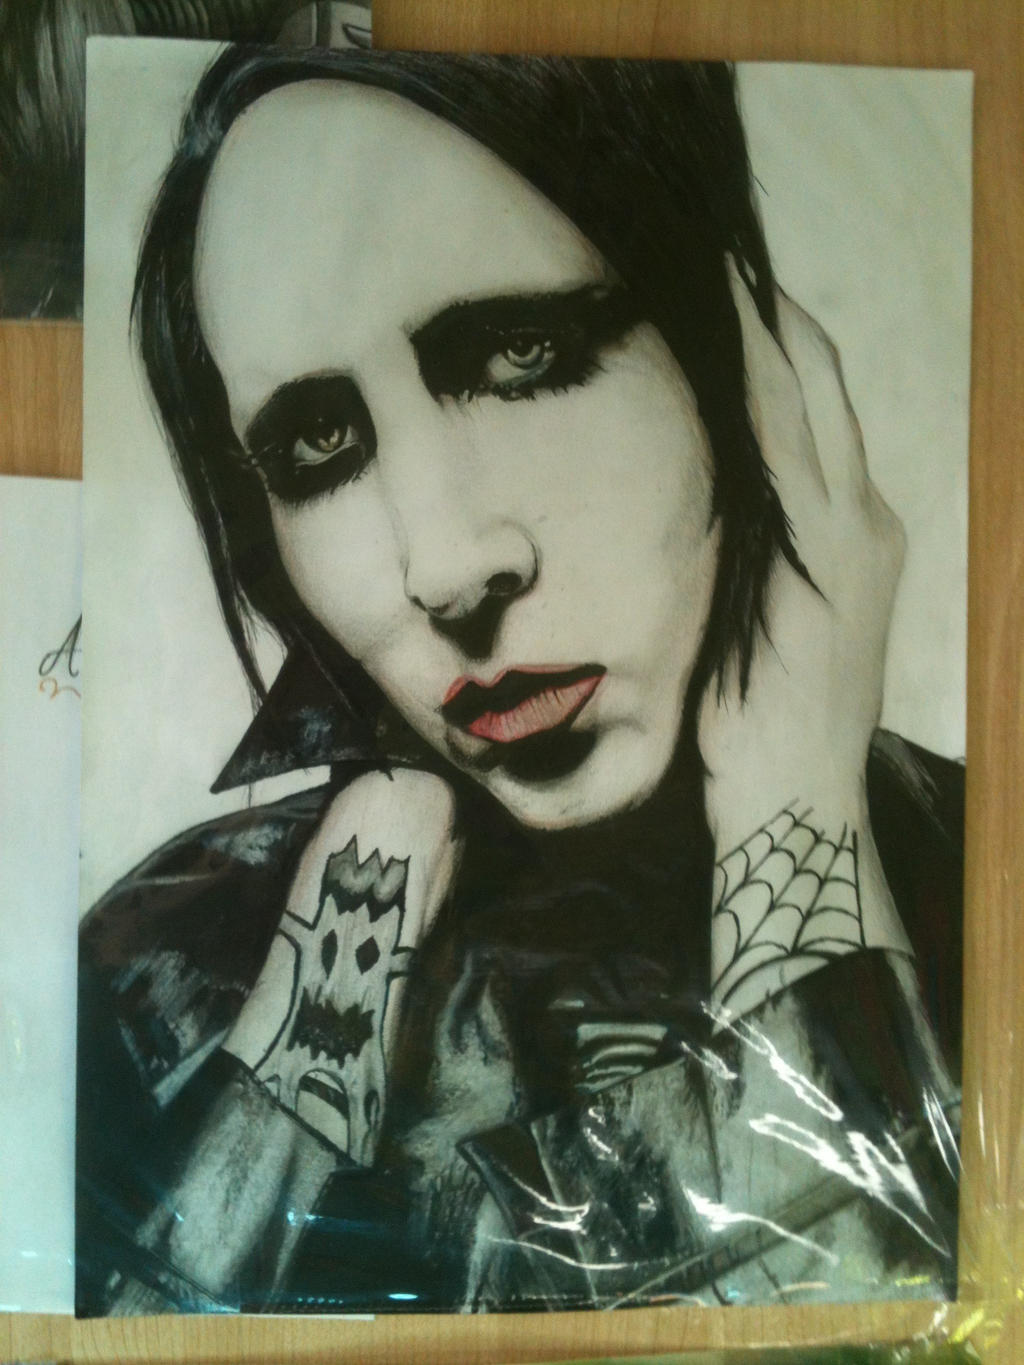 an introduction to the music art by marilyn manson At the time, marilyn manson was a very visible celebrity that seemed to be trying his hardest to piss off as many people as possible his larger than life persona and media circus overshadowed his music for much of this time.